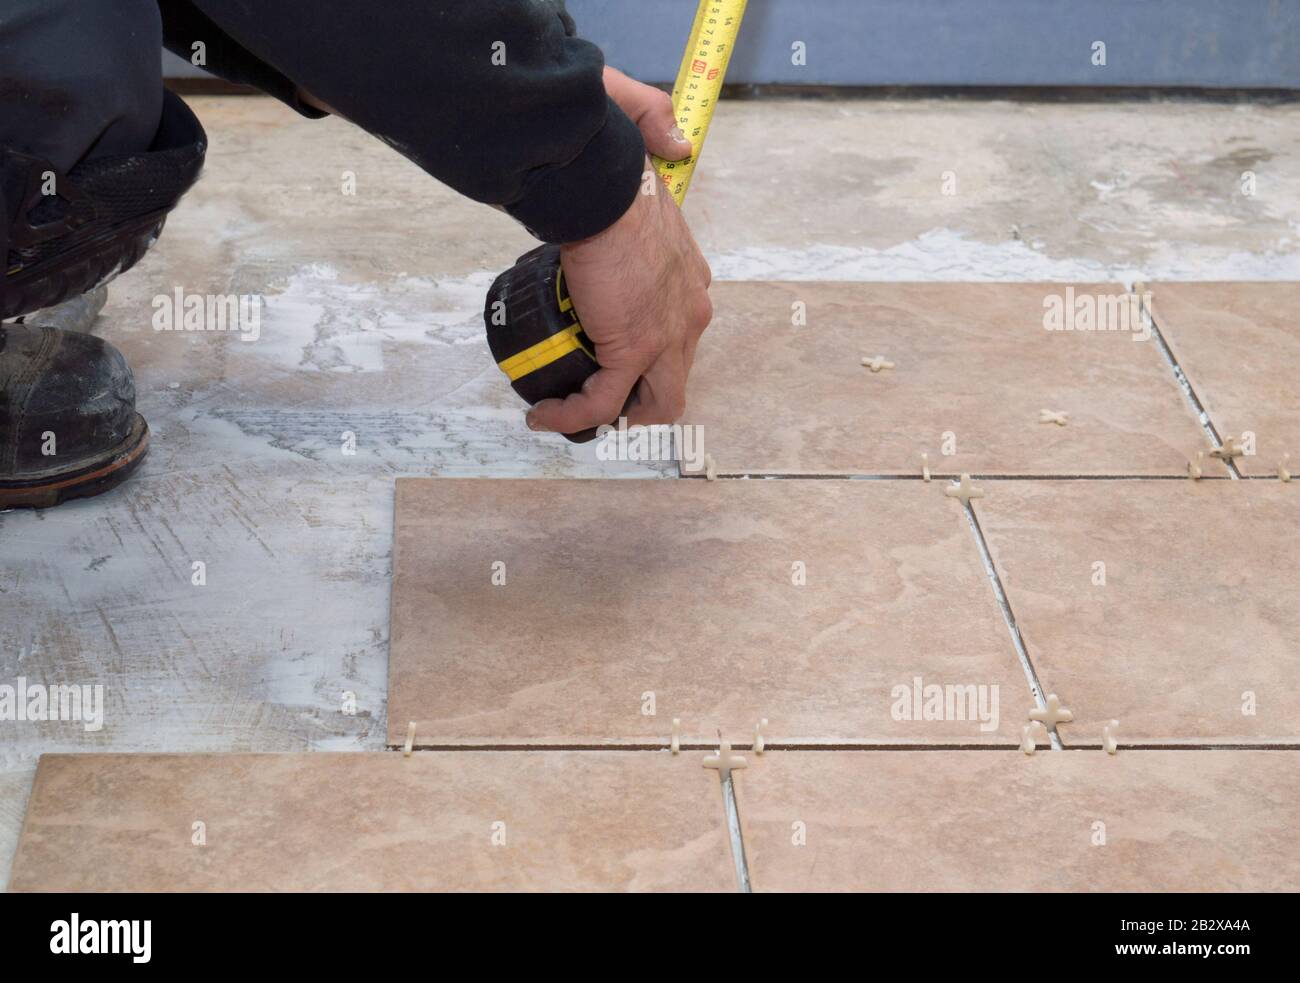 https www alamy com ceramic tiles are being put down by a contractor on a cement floor the contractor measures the area for the next tiles image346015386 html